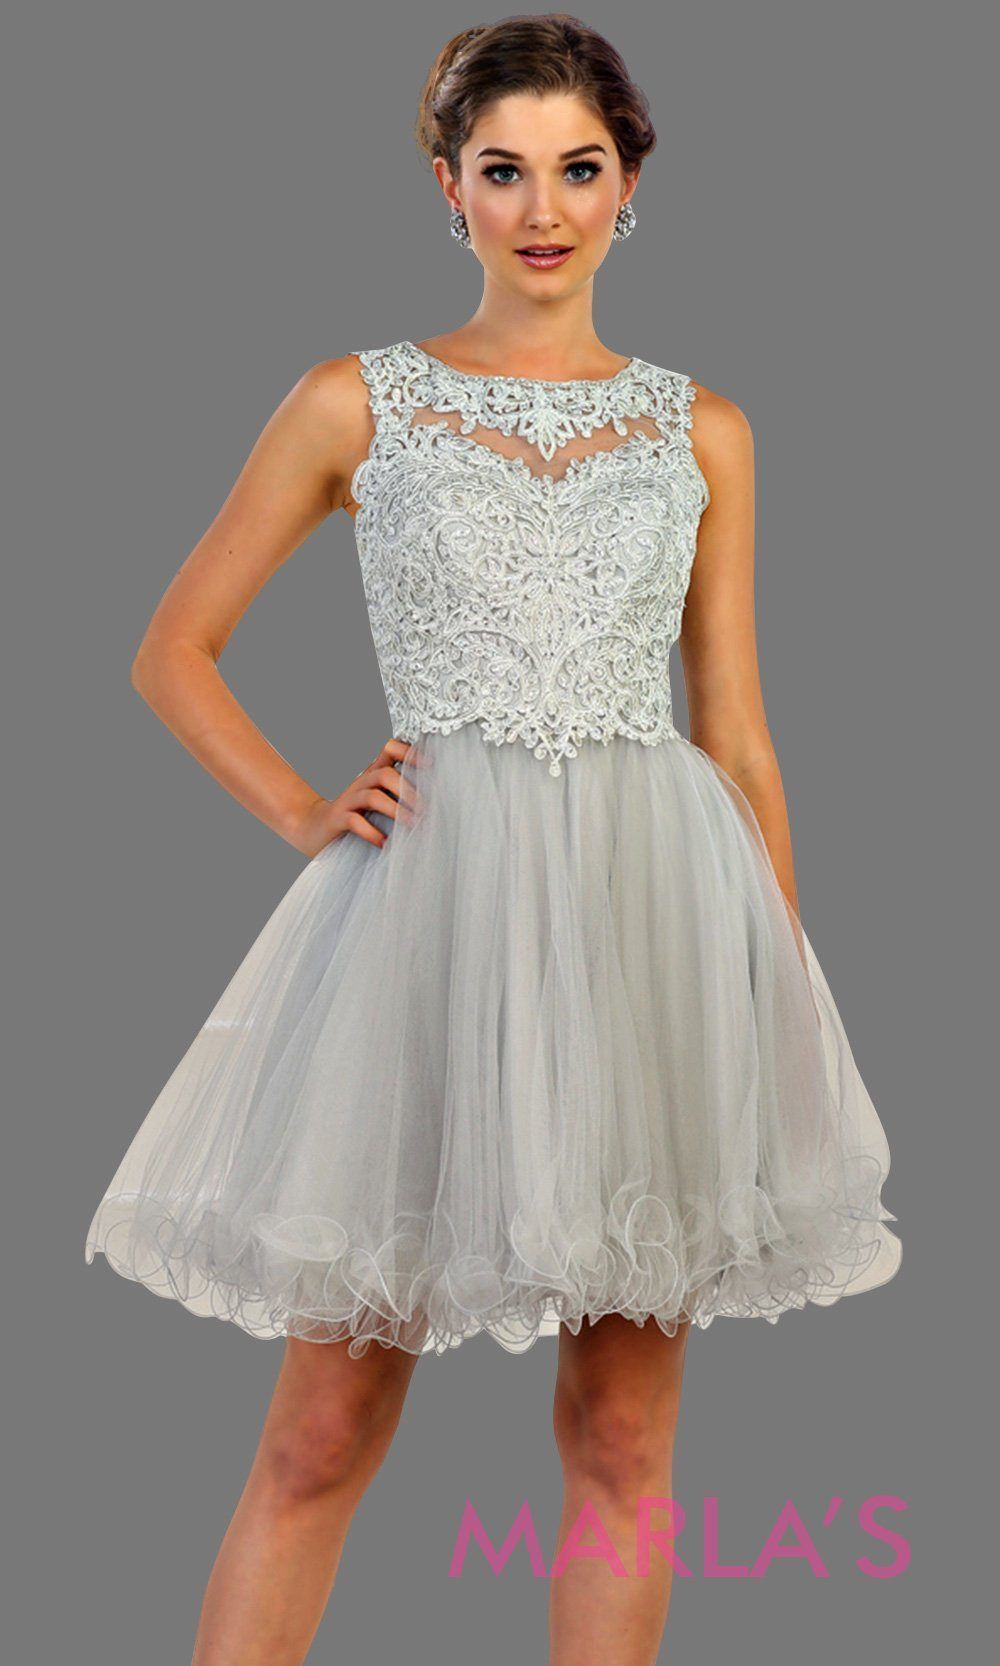 274e4331a1 Short high neck puffy light gray dress with lace top. Perfect for grade 8  grad